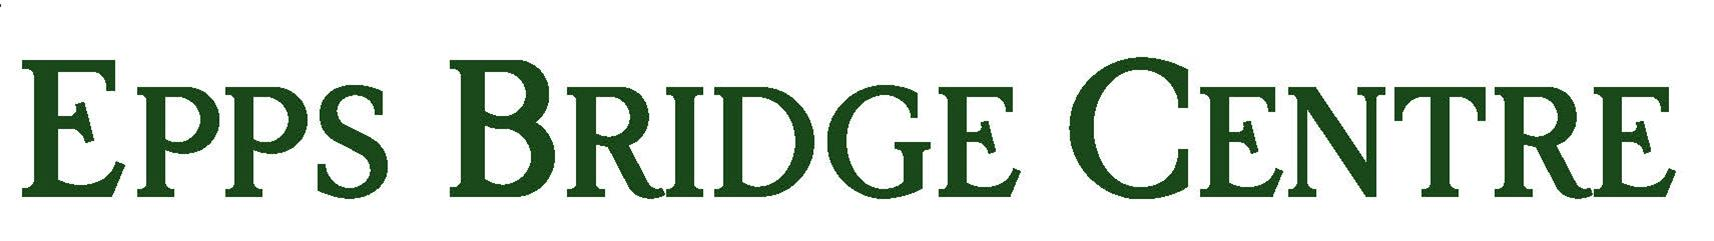 Epps Bridge Centre logo green.jpg